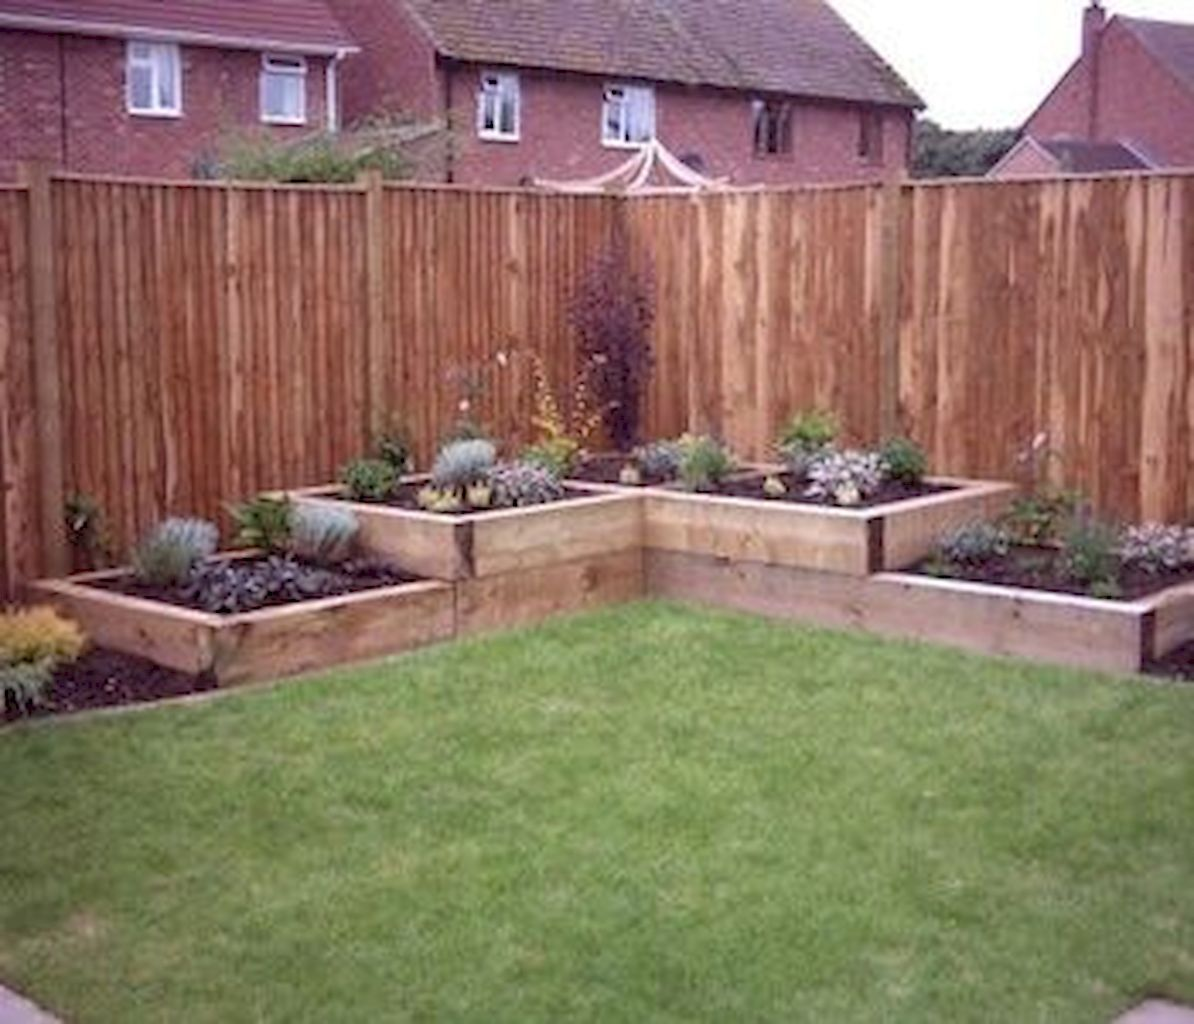 40 beautiful backyard landscaping ideas on a budget for Garden designs with raised beds